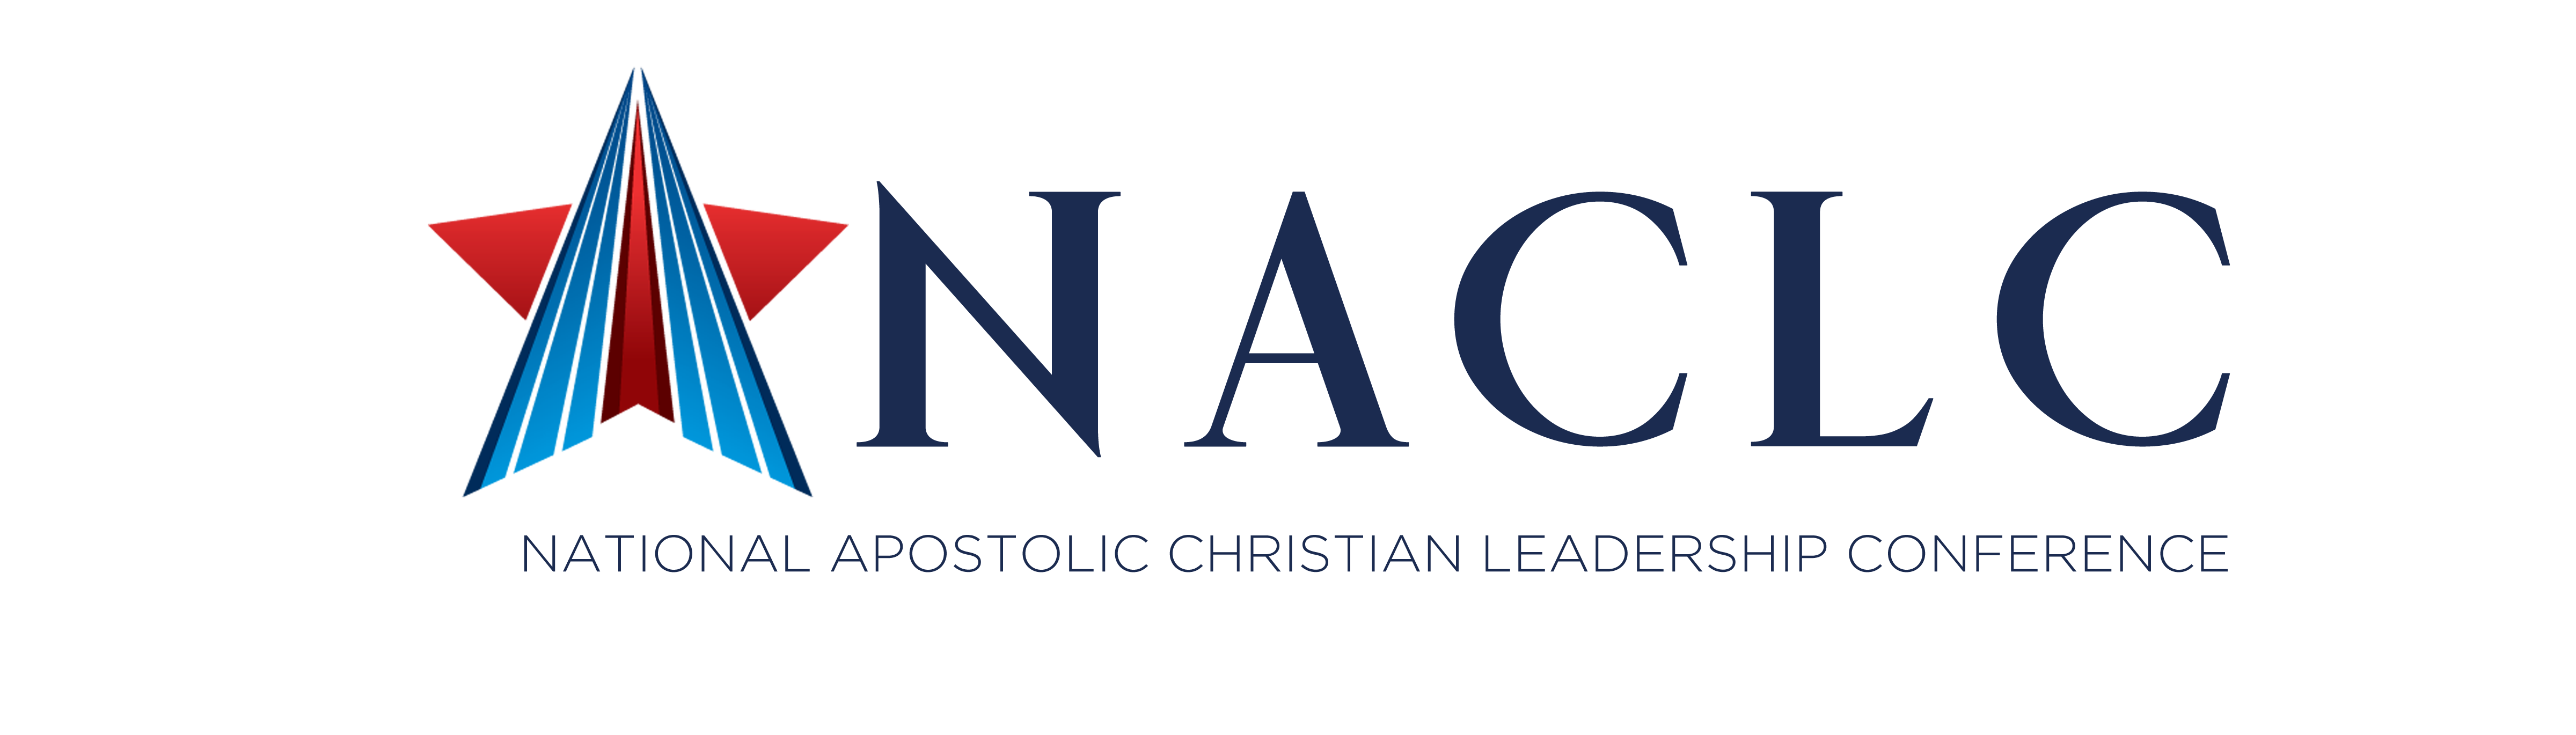 NACLC Organization Monthly Membership ($15-20M)